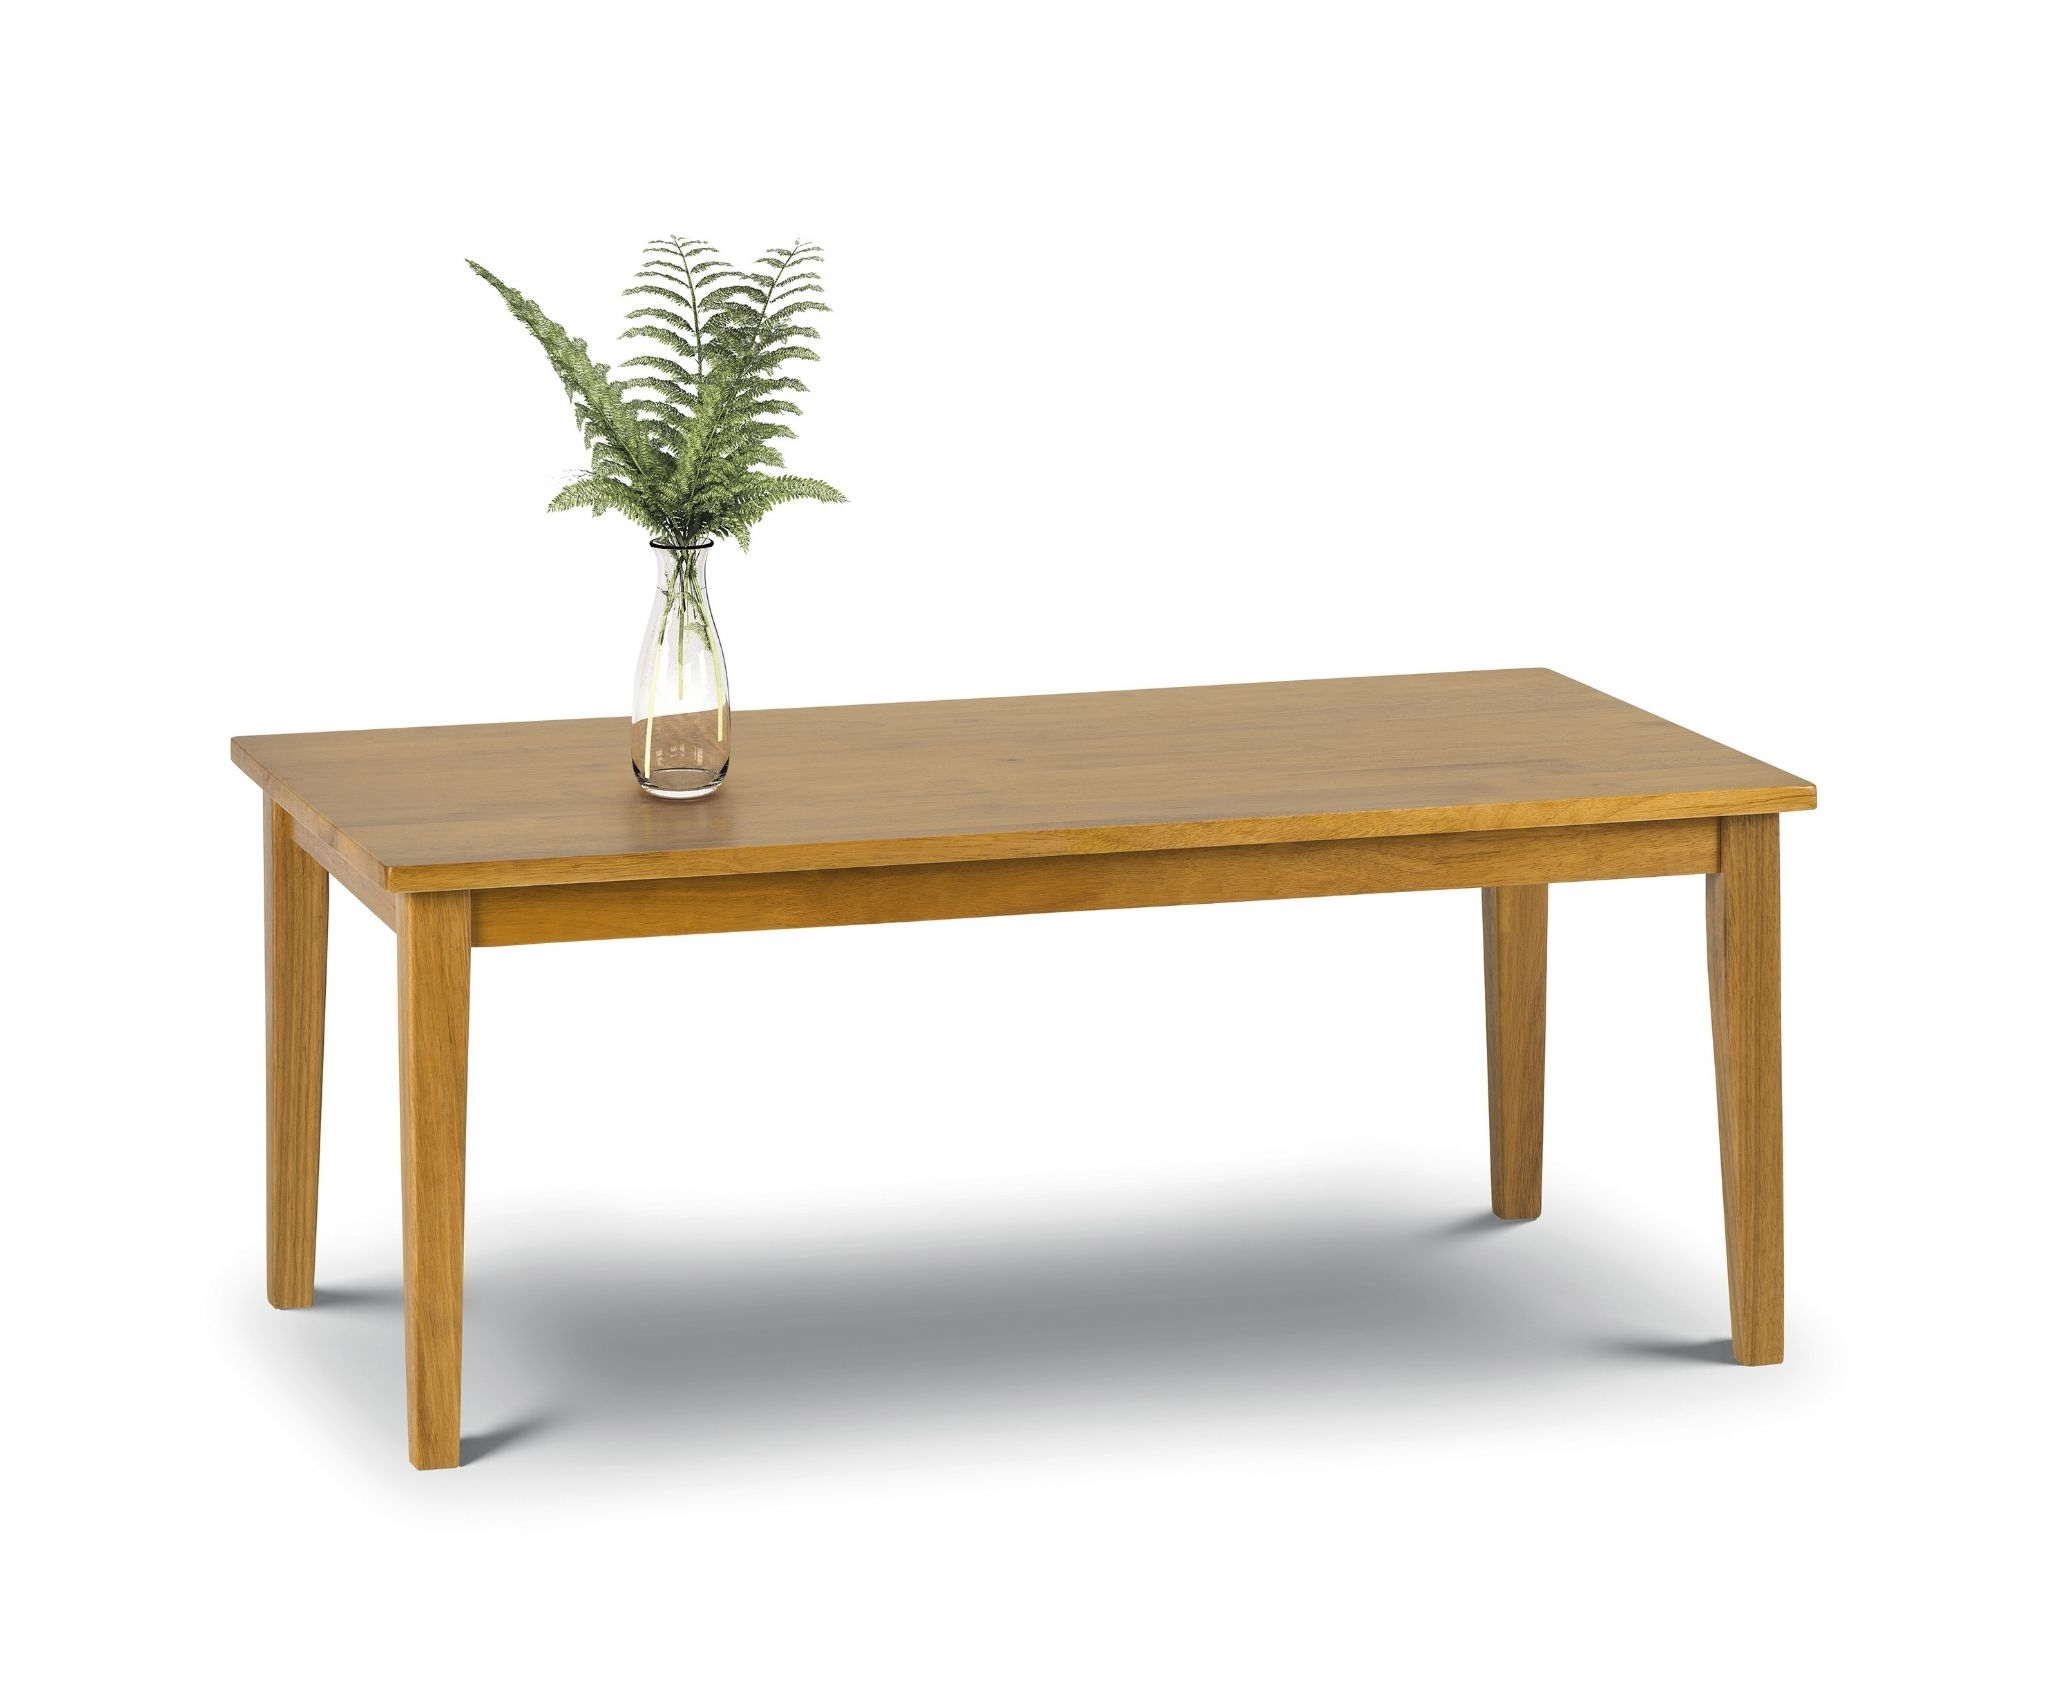 Toledo Natural Light Oak Finish Coffee Table Jb151 Inside Most Current Light Natural Coffee Tables (View 7 of 20)